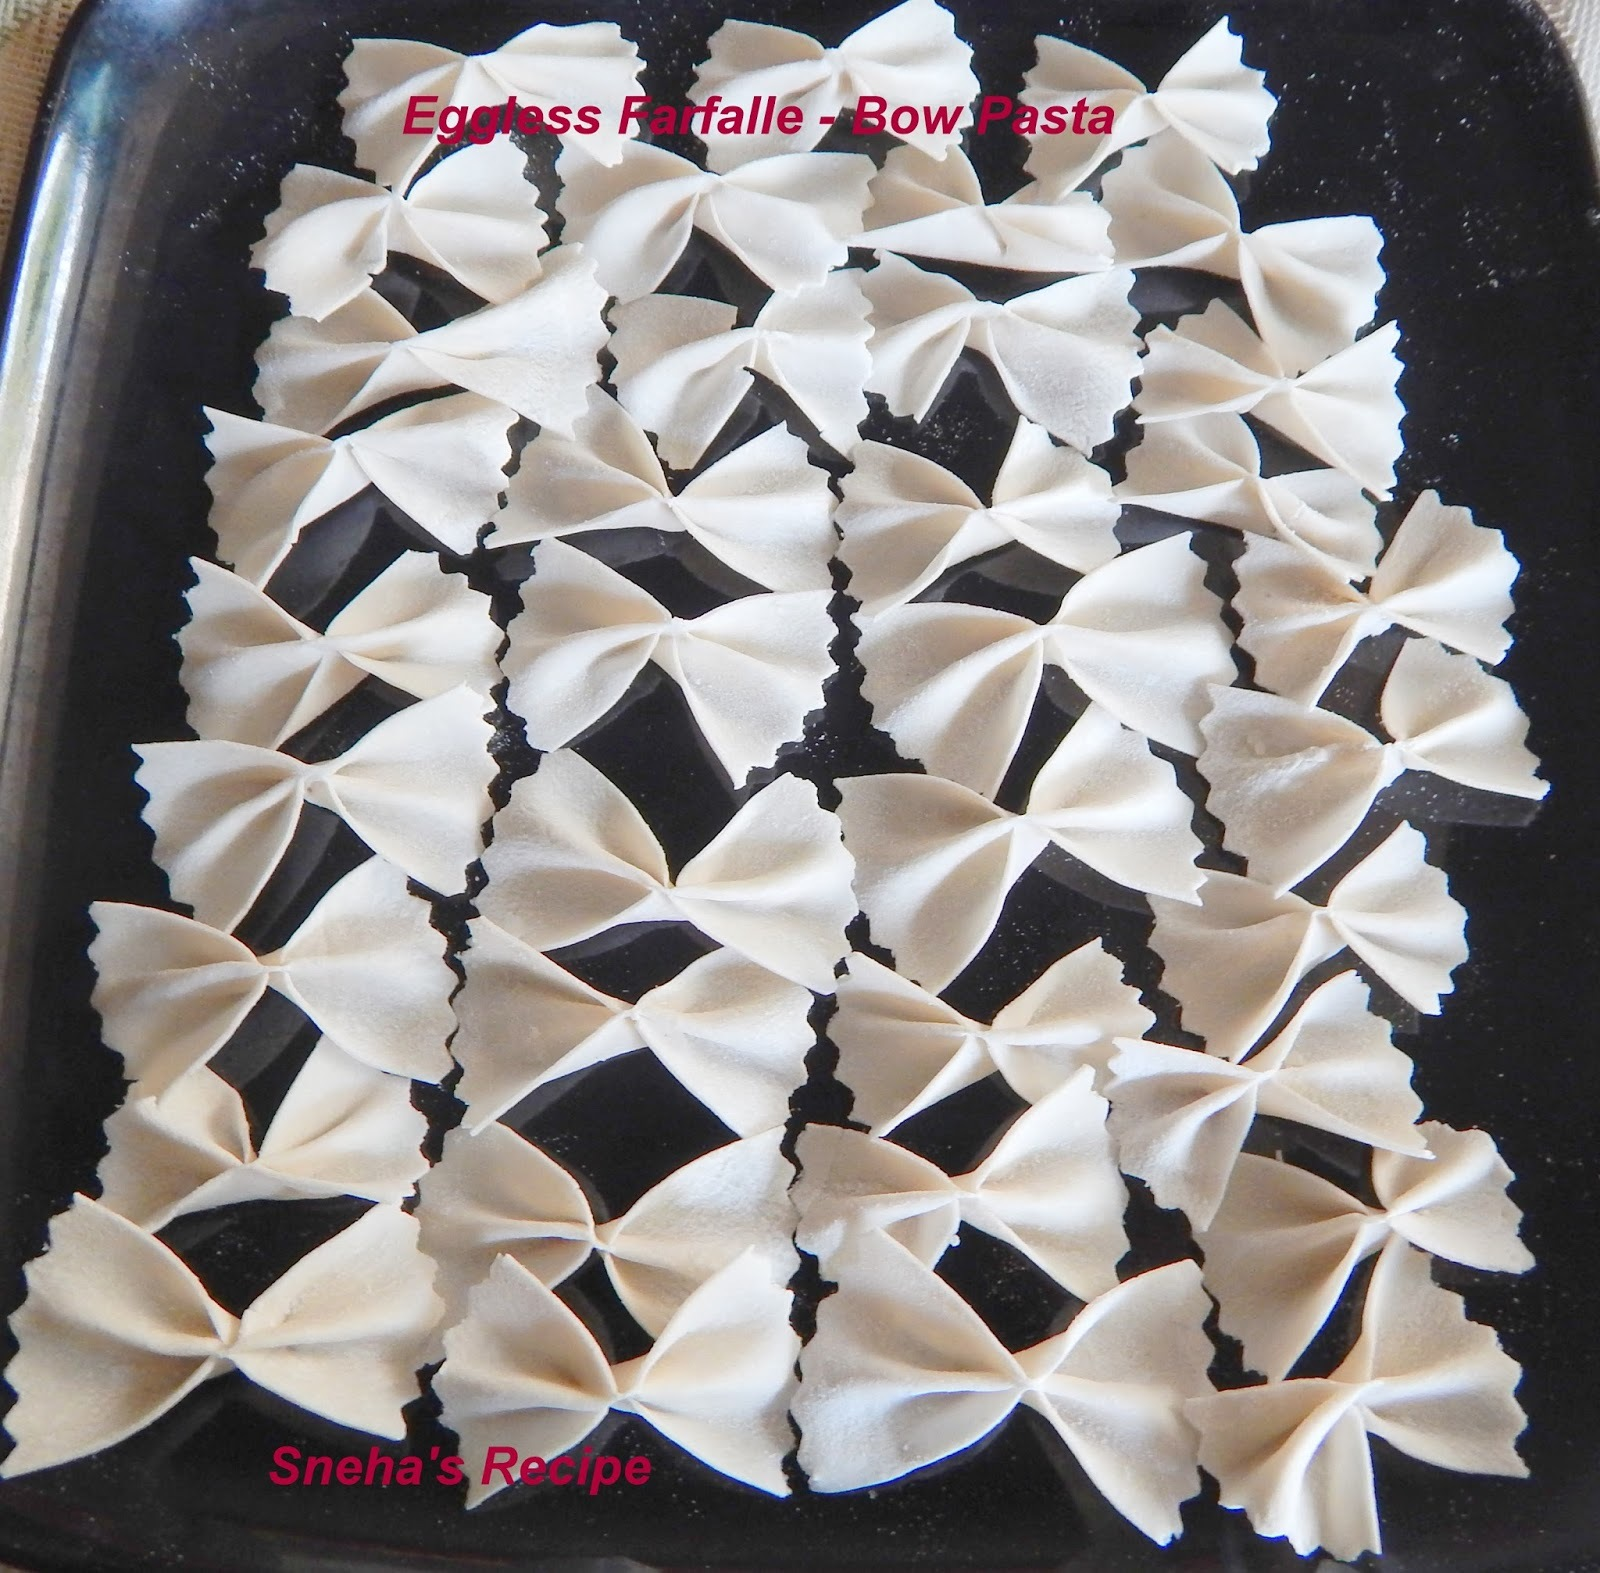 Eggless Farfalle - Bow Pasta - How to make Farfalle Pasta at home